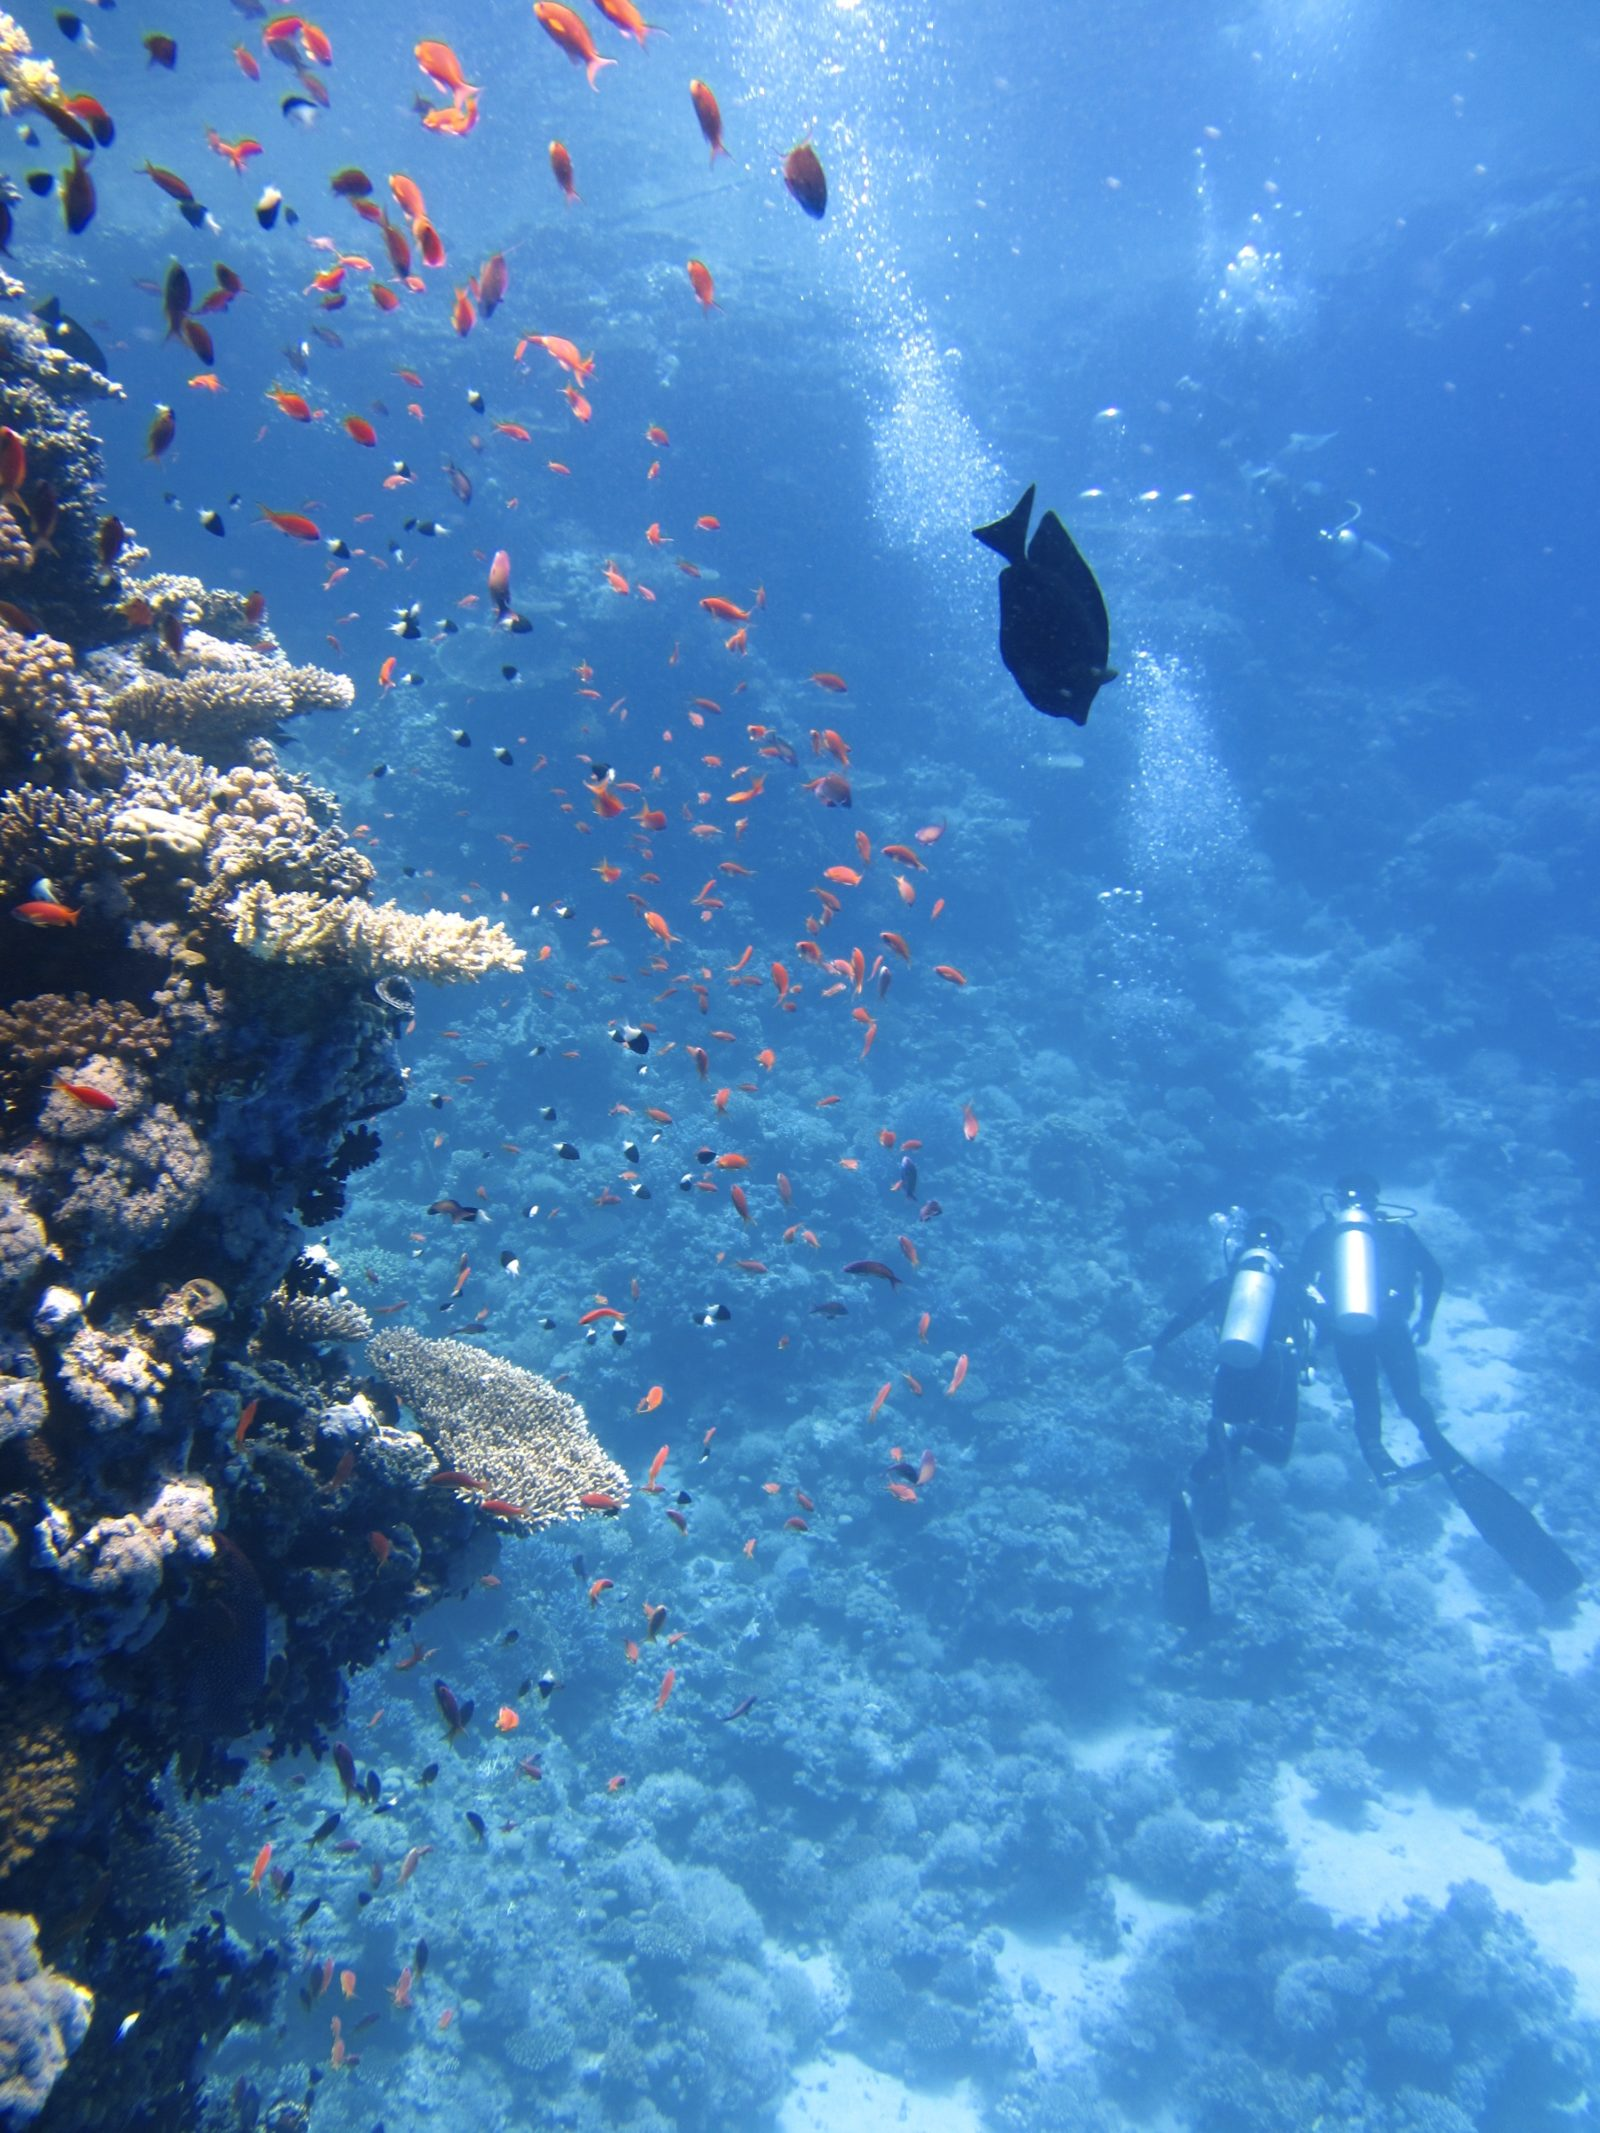 Underwater Fish, Corral and Divers